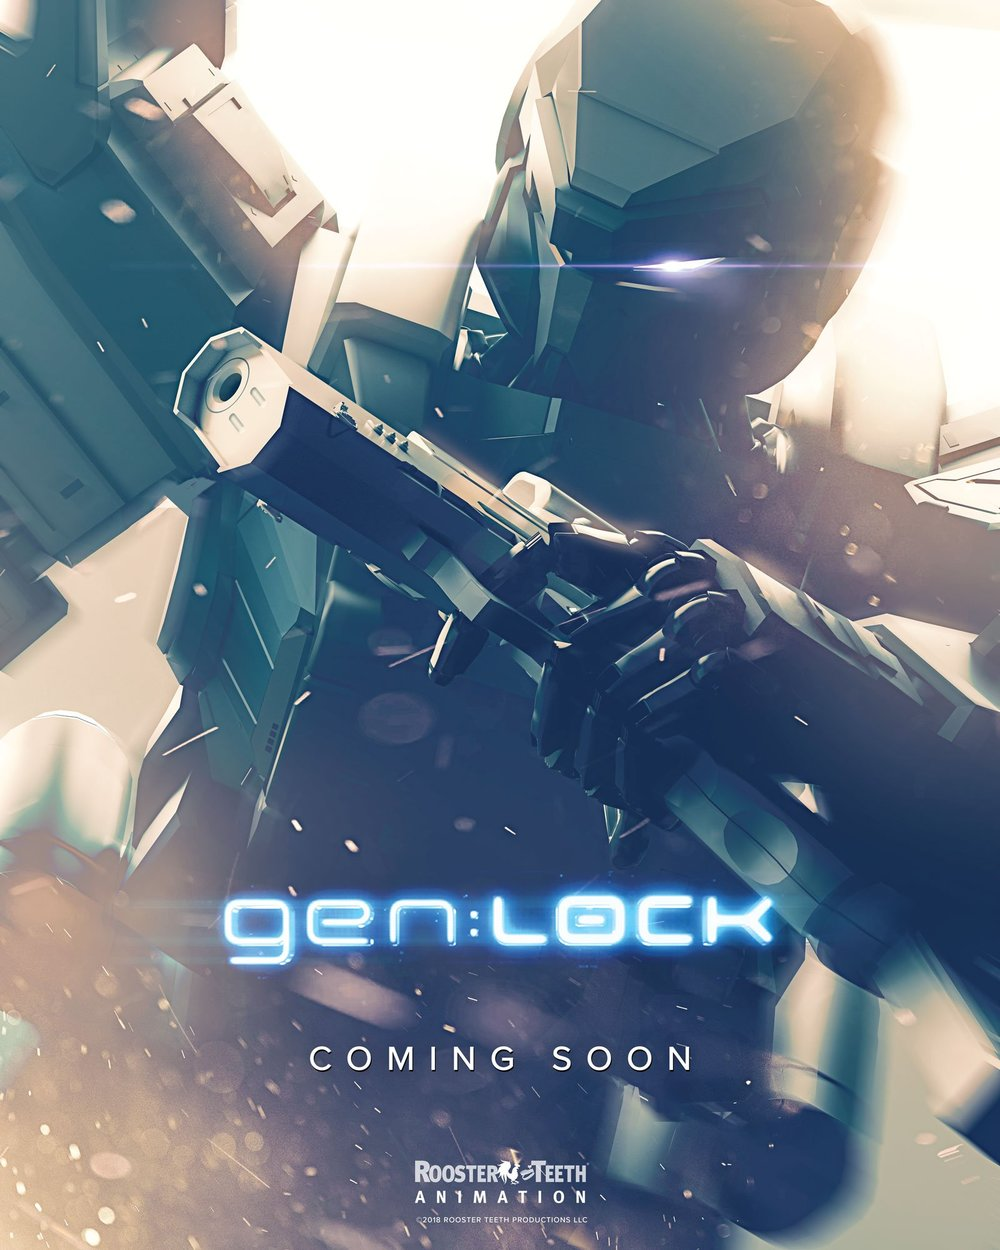 michael-b-jordan-to-star-in-rooster-teeths-mecha-anime-series-gen-lock4